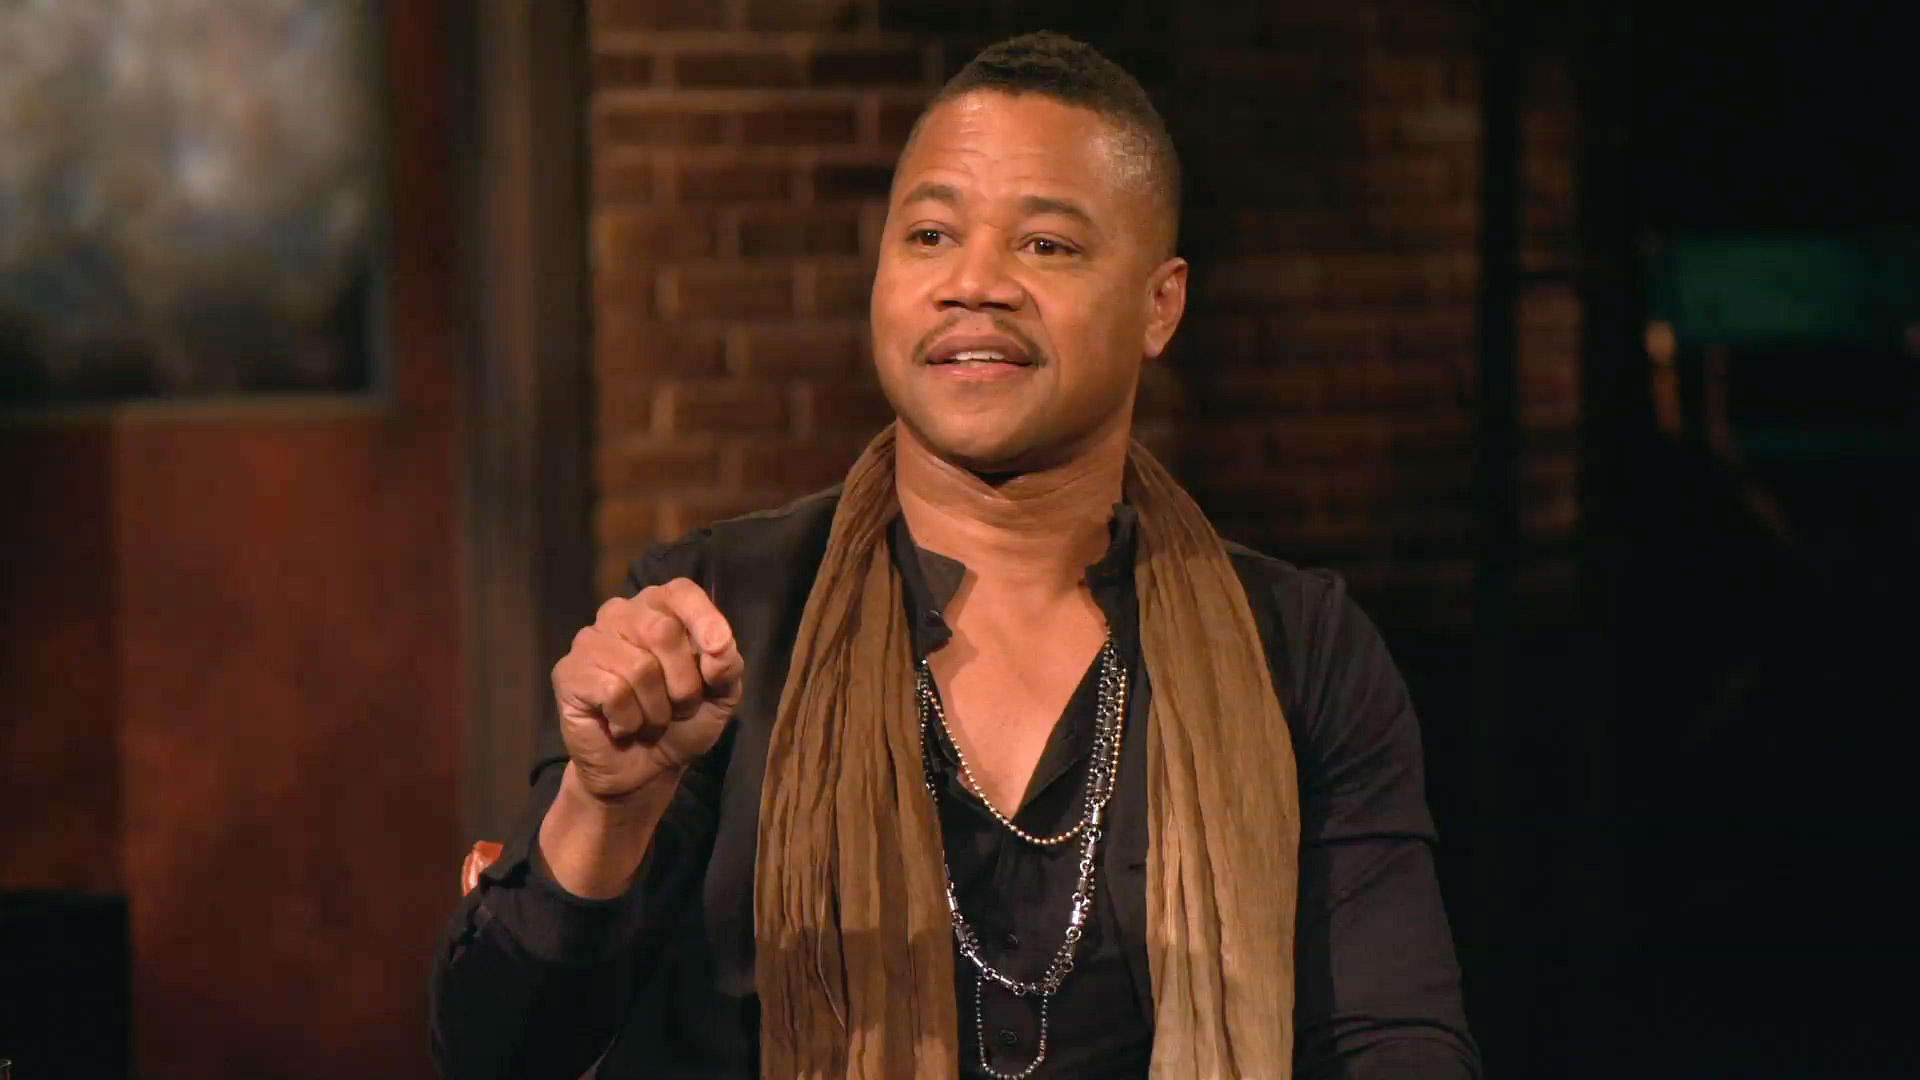 What Brought Cuba Gooding Jr. to Tears on the O.J. Set?